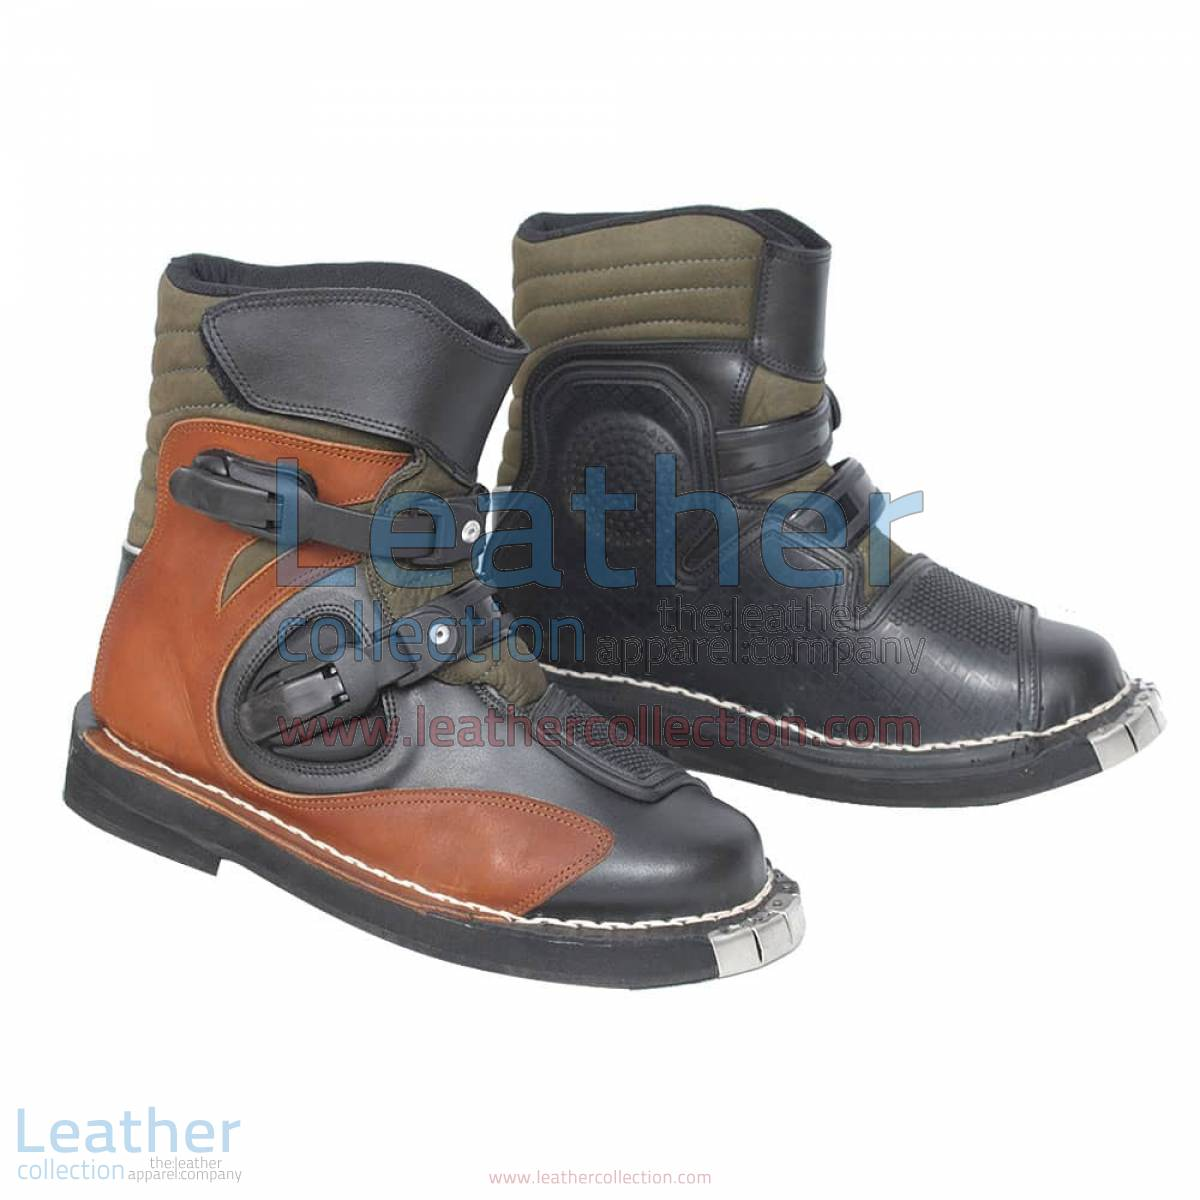 Bandit Motorcycle Riding Boots | motorcycle riding boots